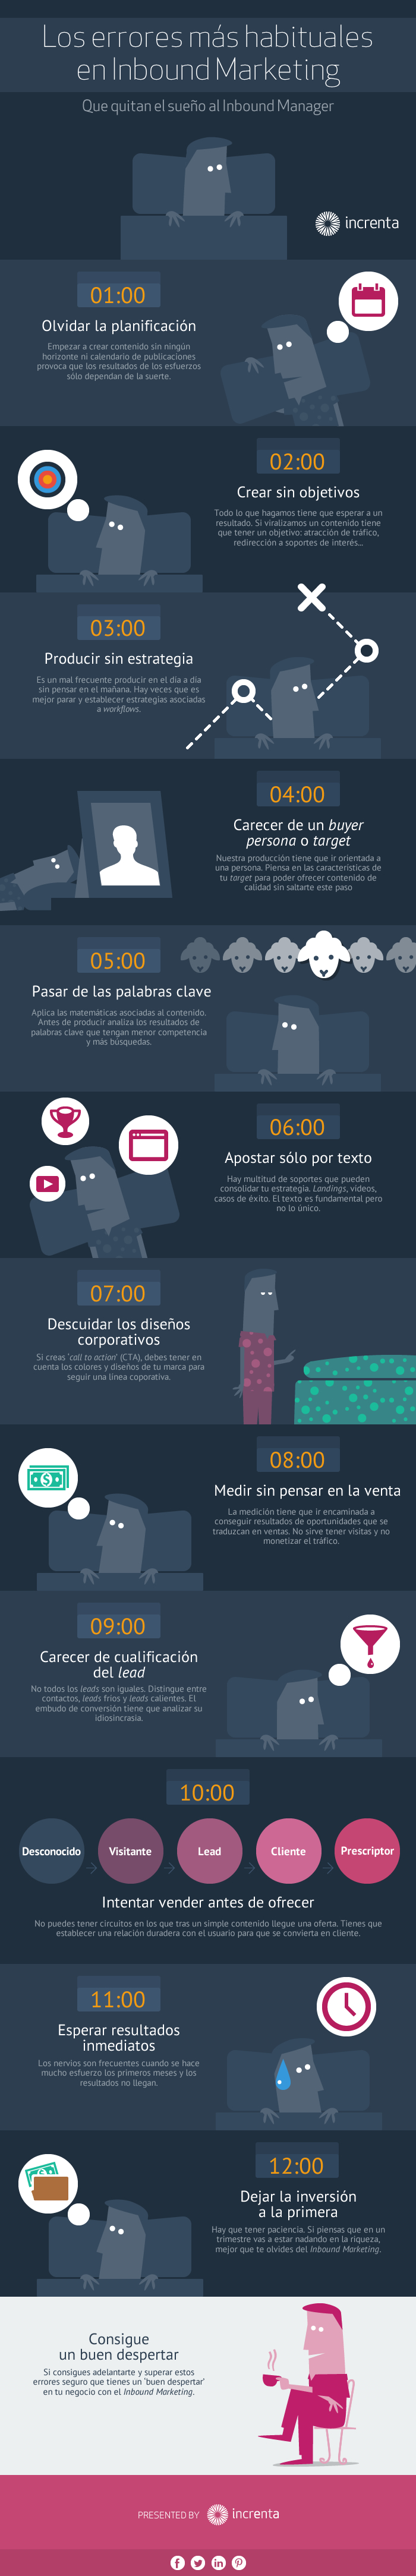 Los errores más habituales del Inbound Marketing